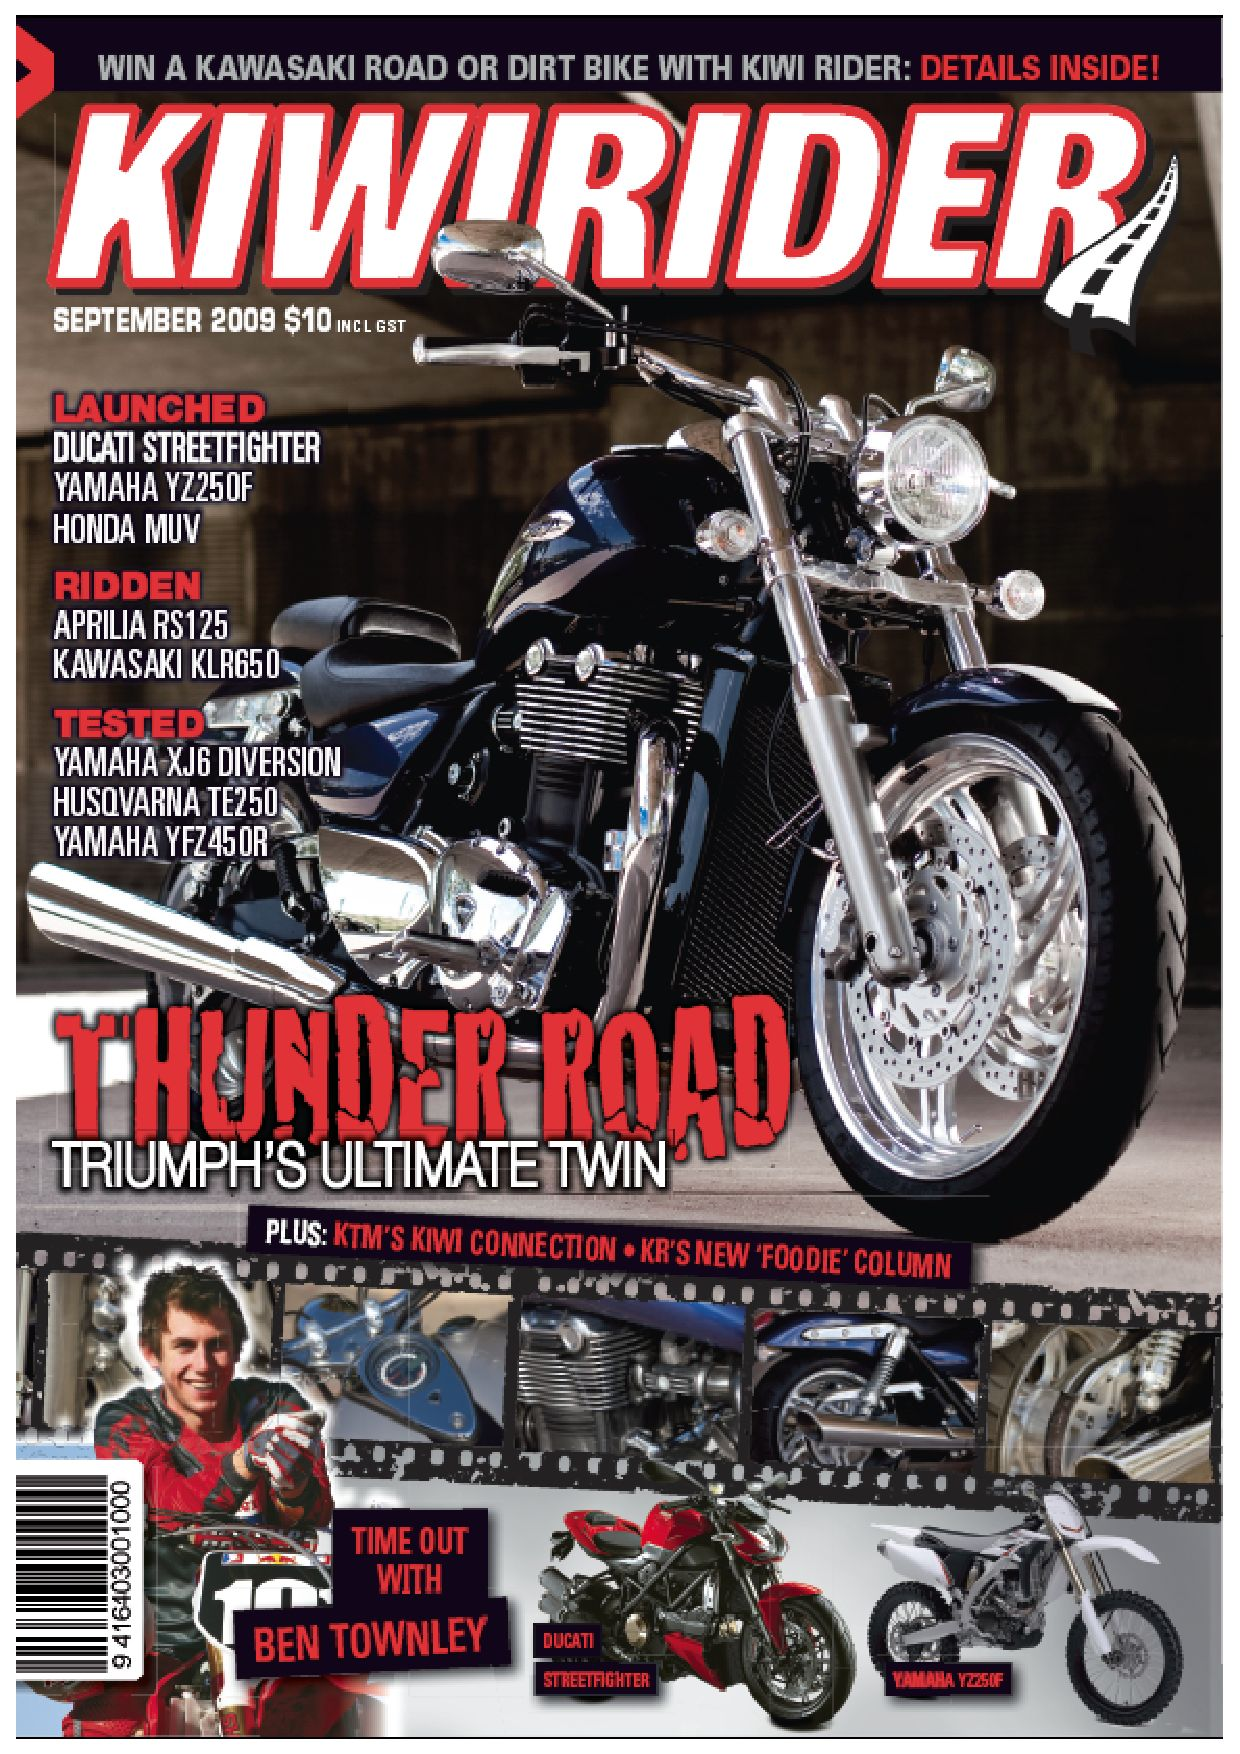 KIWIRIDER July 2009 By KIWI RIDER MAGAZINE   Issuu